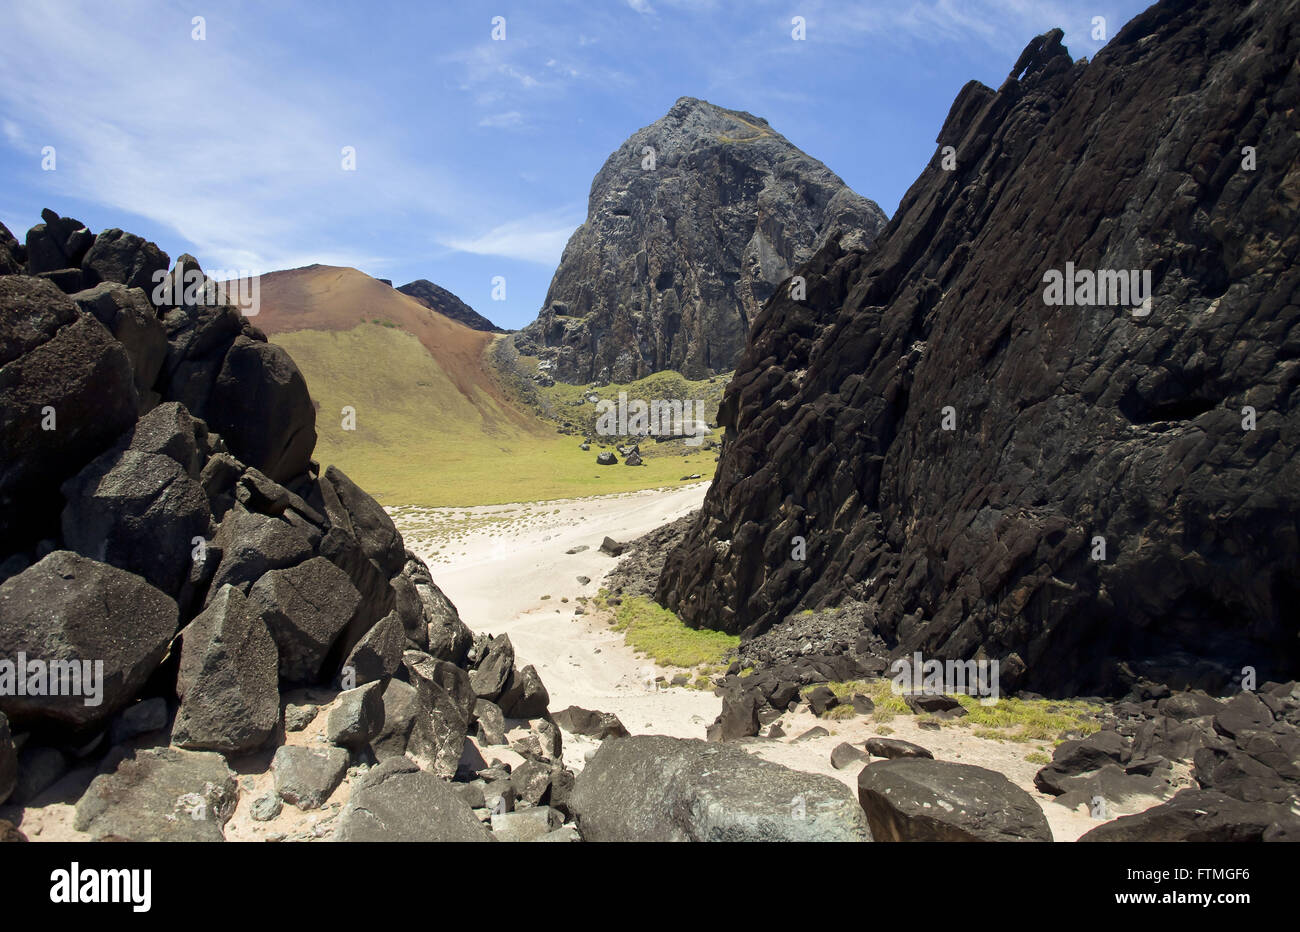 Volcanic formation on the island of Trinidad - Stock Image